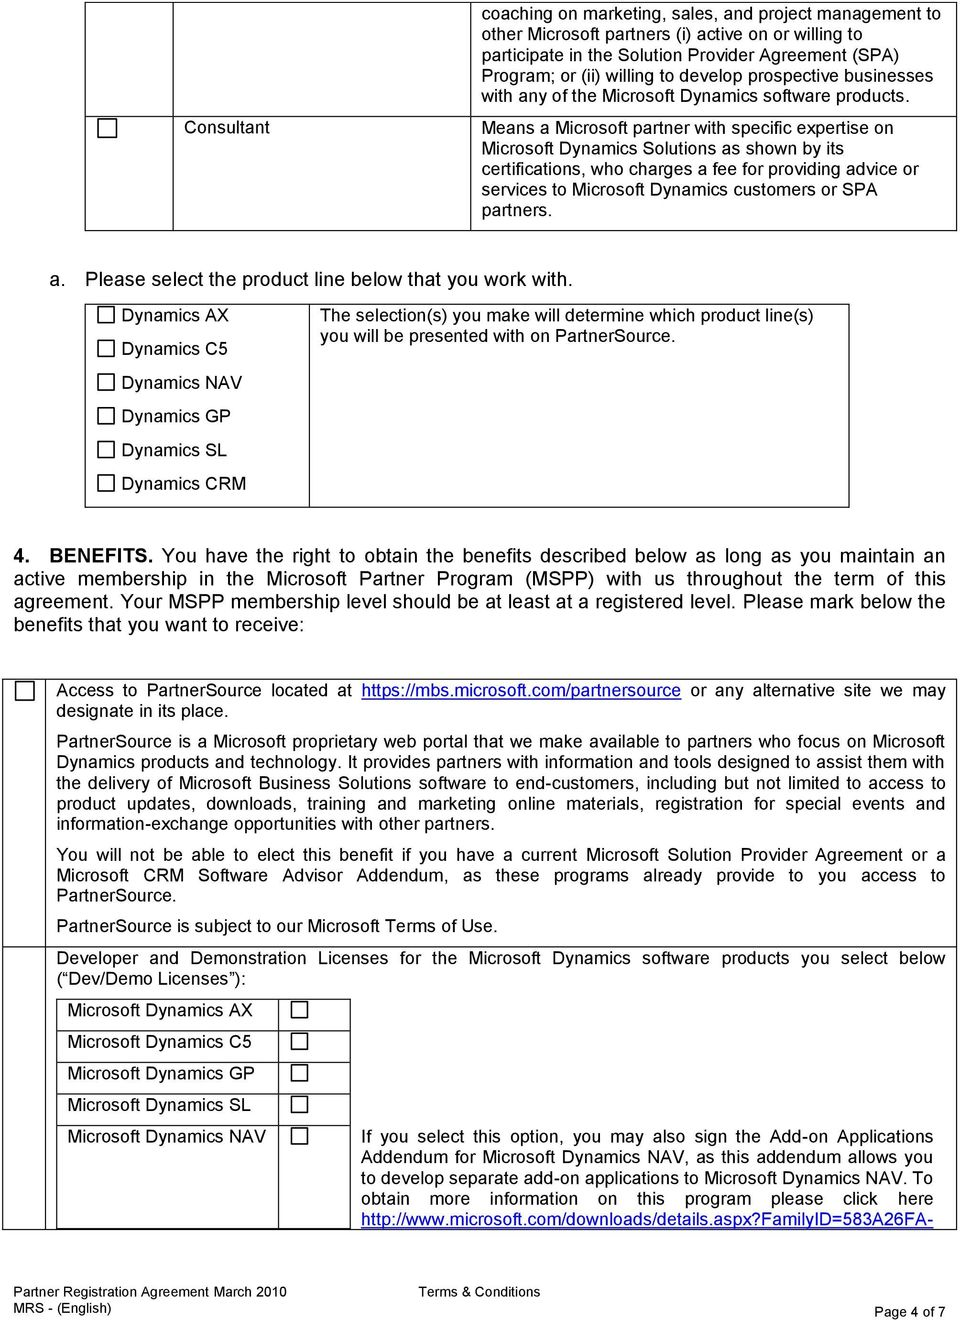 Microsoft Dynamics Partner Registration Agreement Pdf